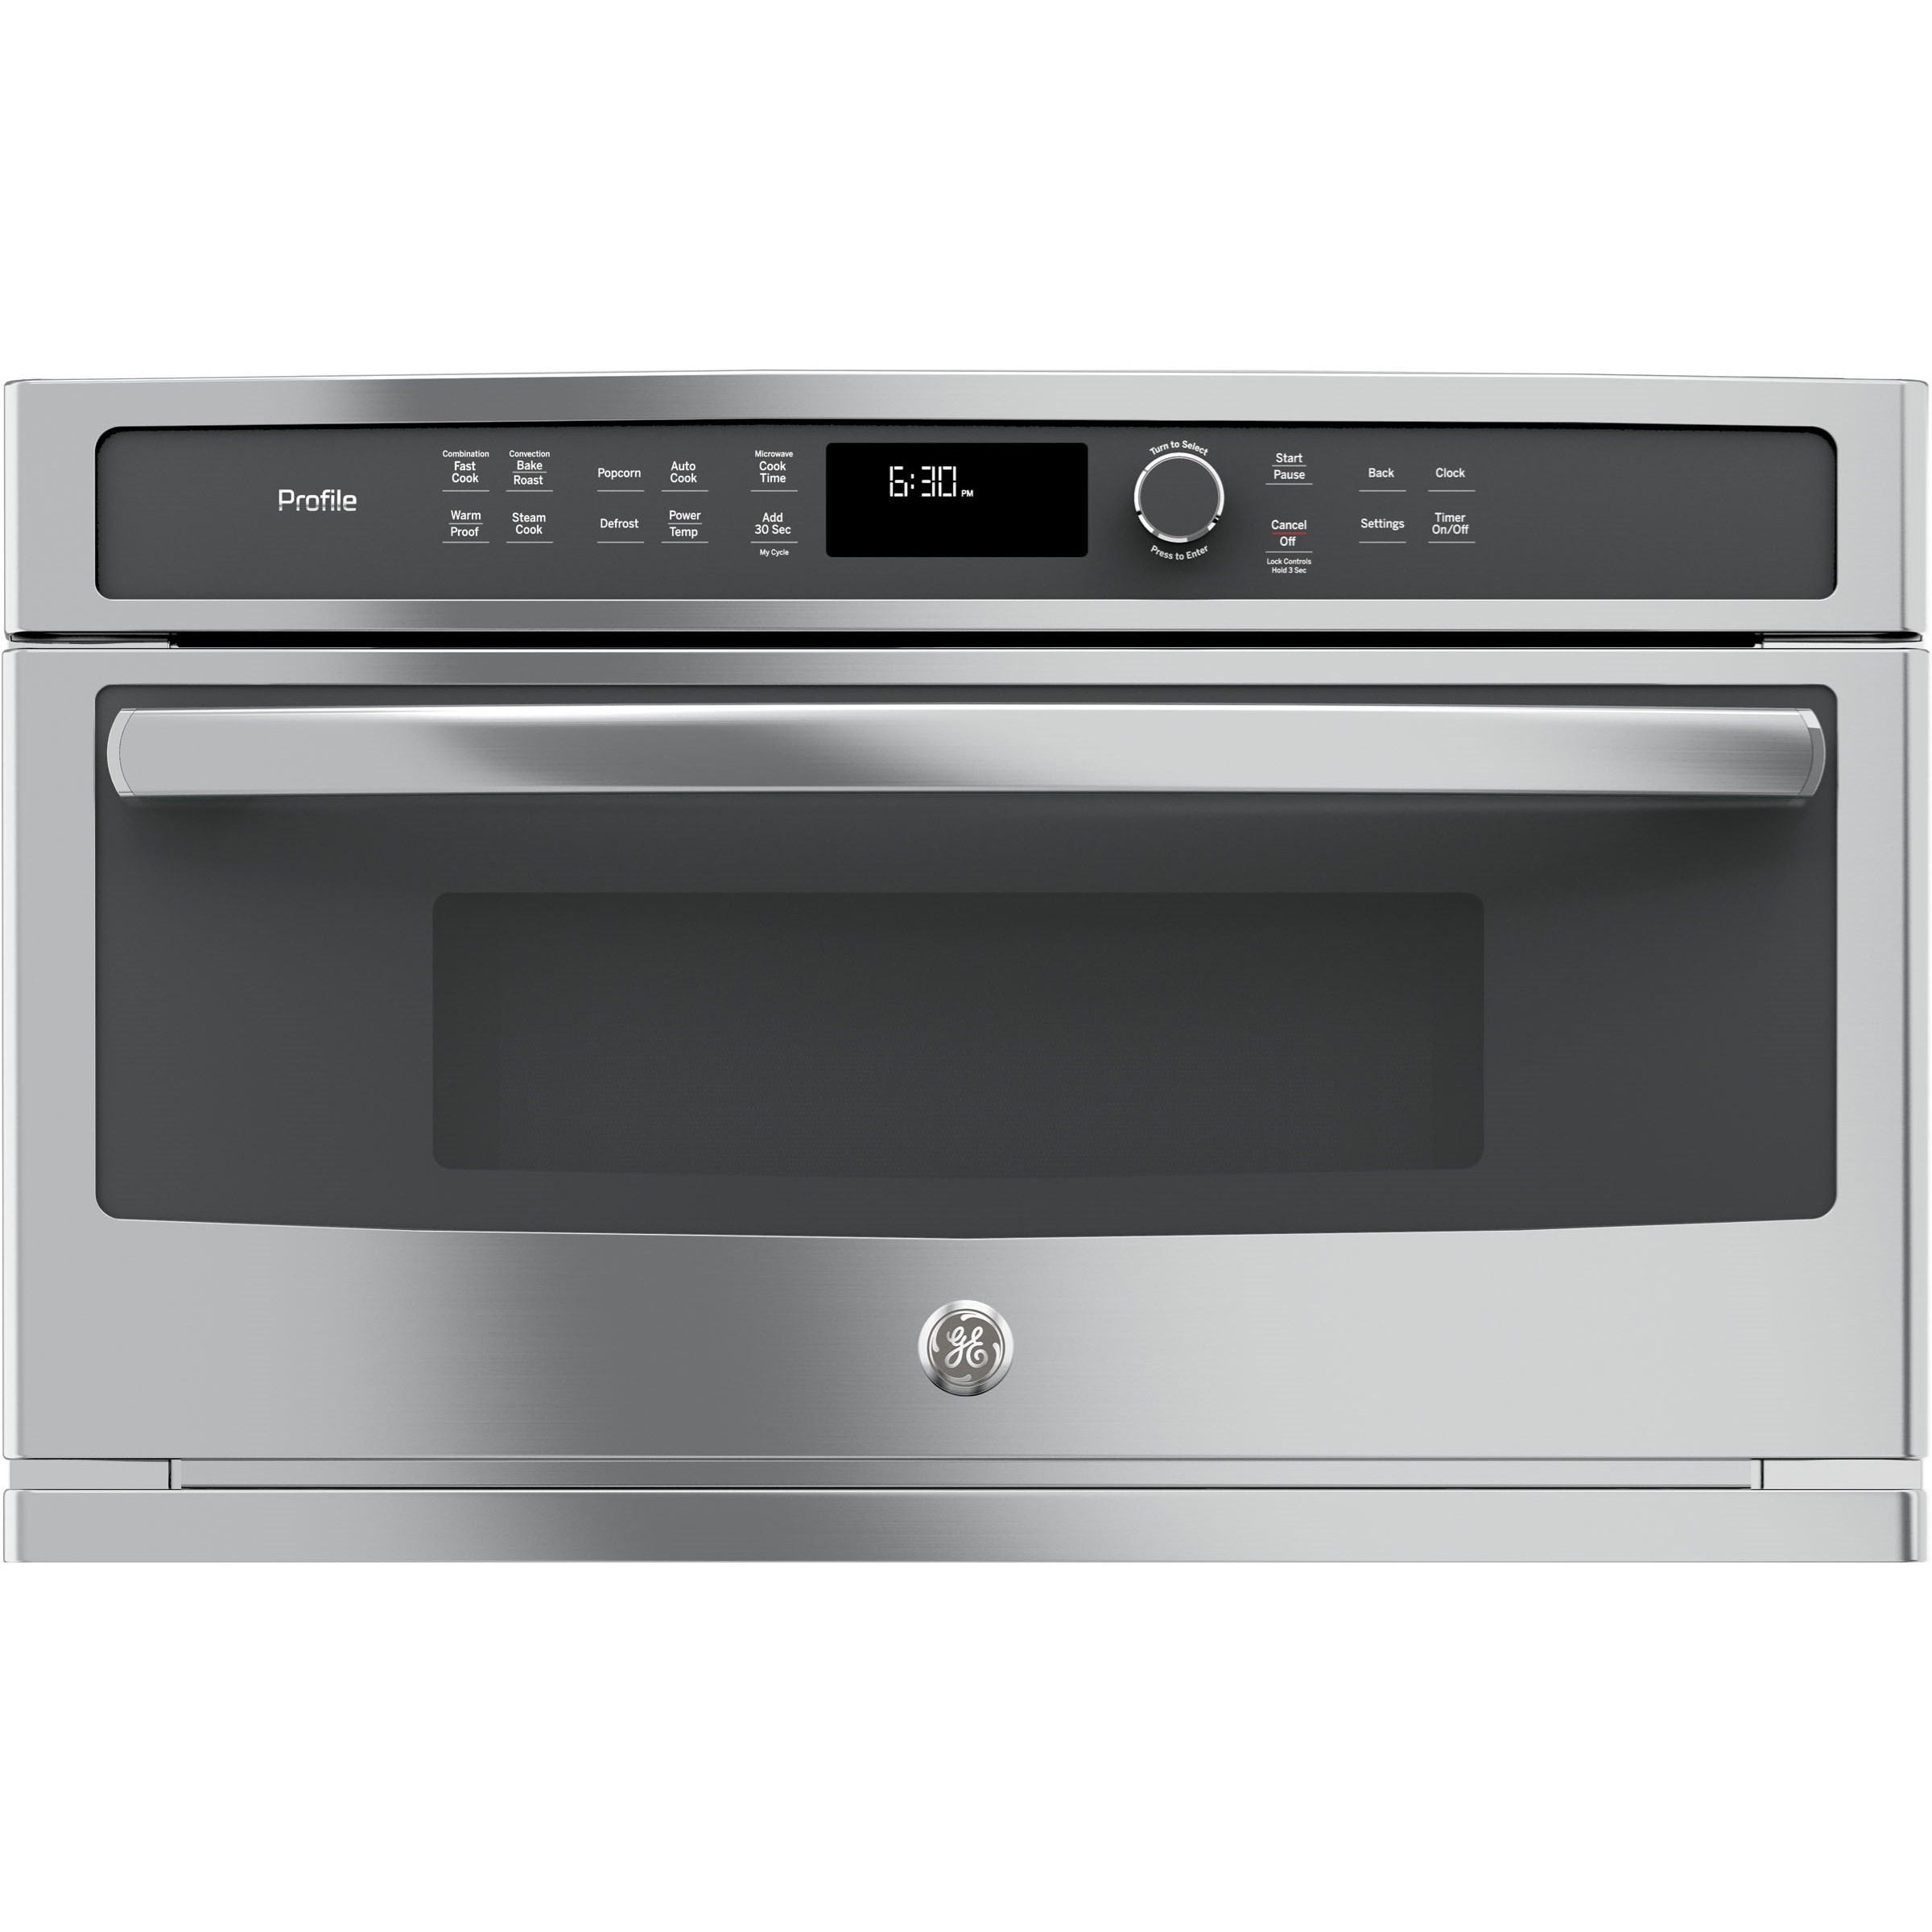 Microwave Convection Oven Vandrie